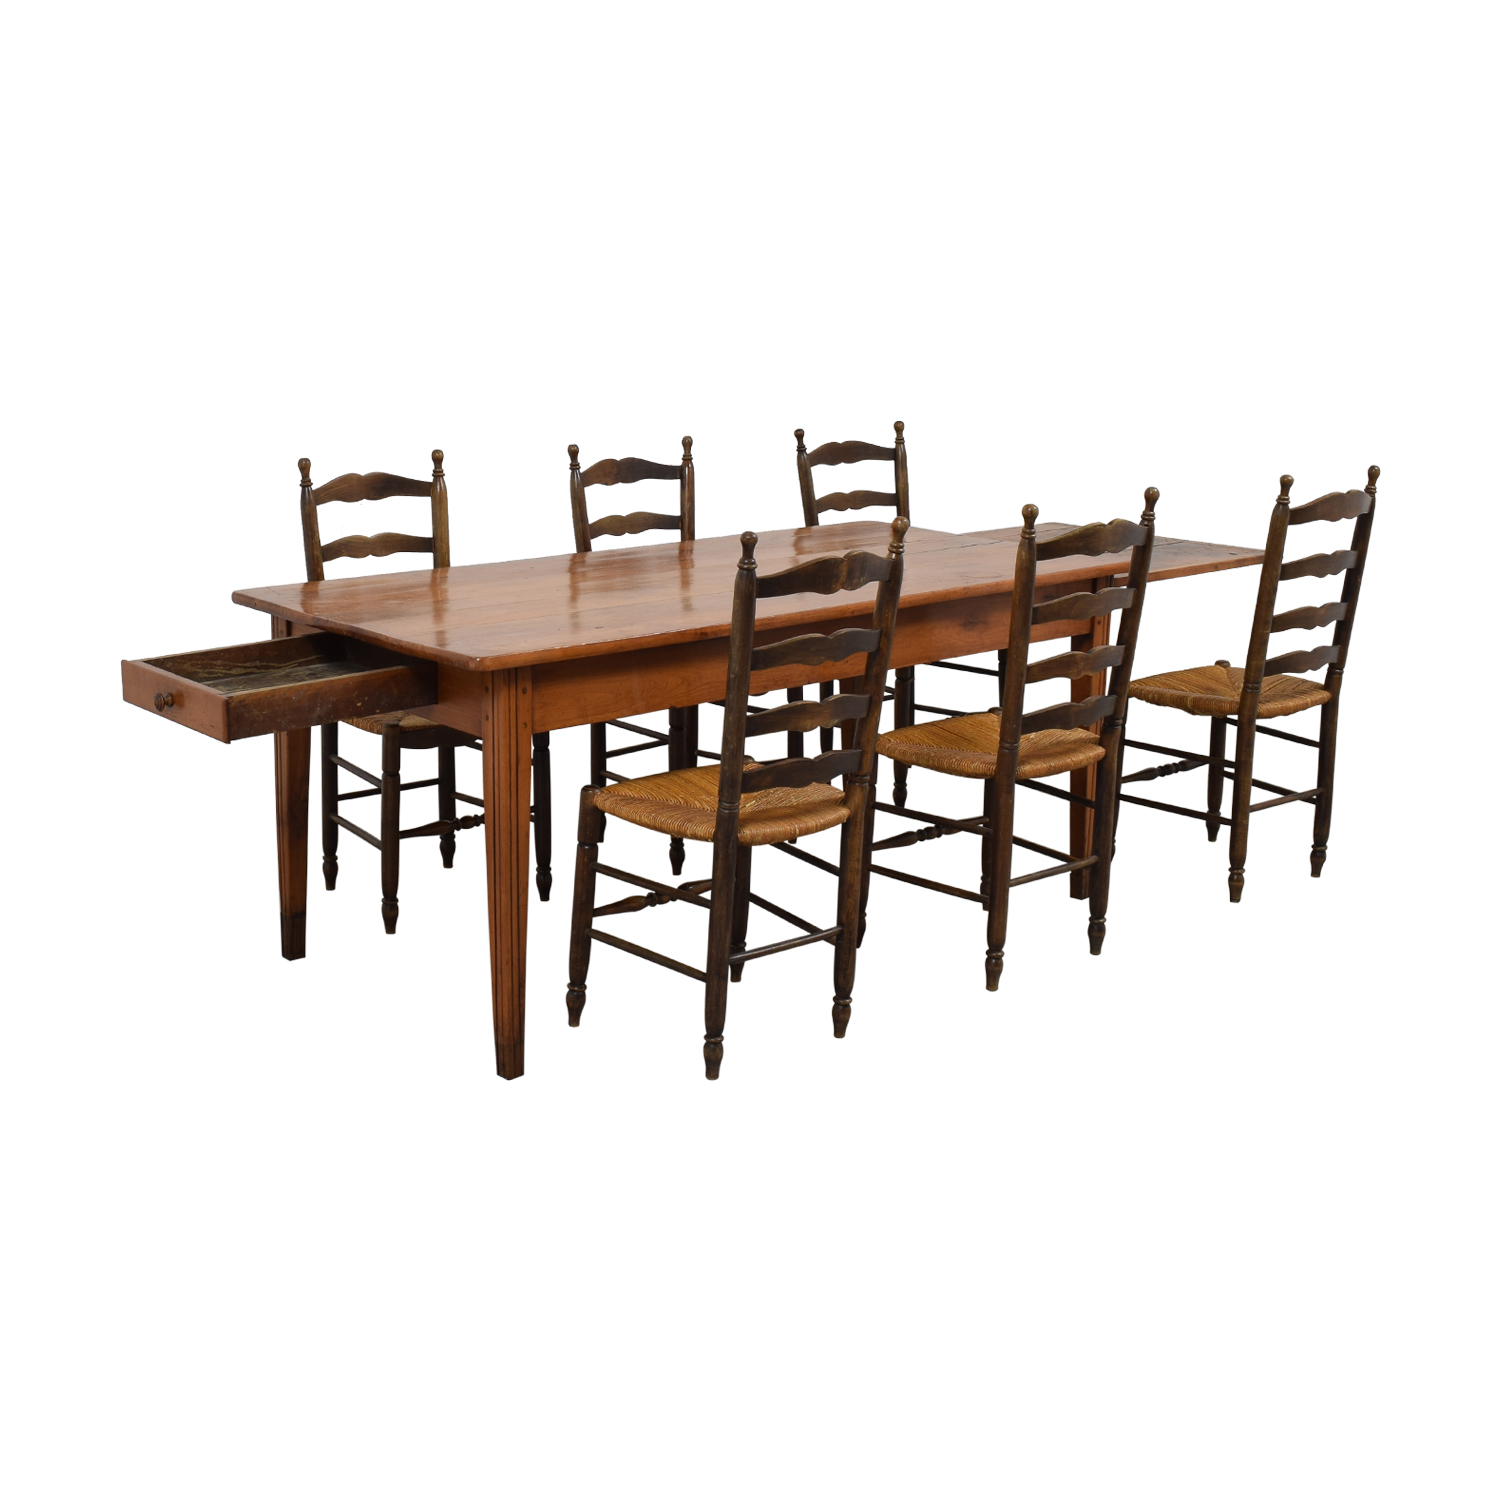 Wood Dining Set with Pullout Extension